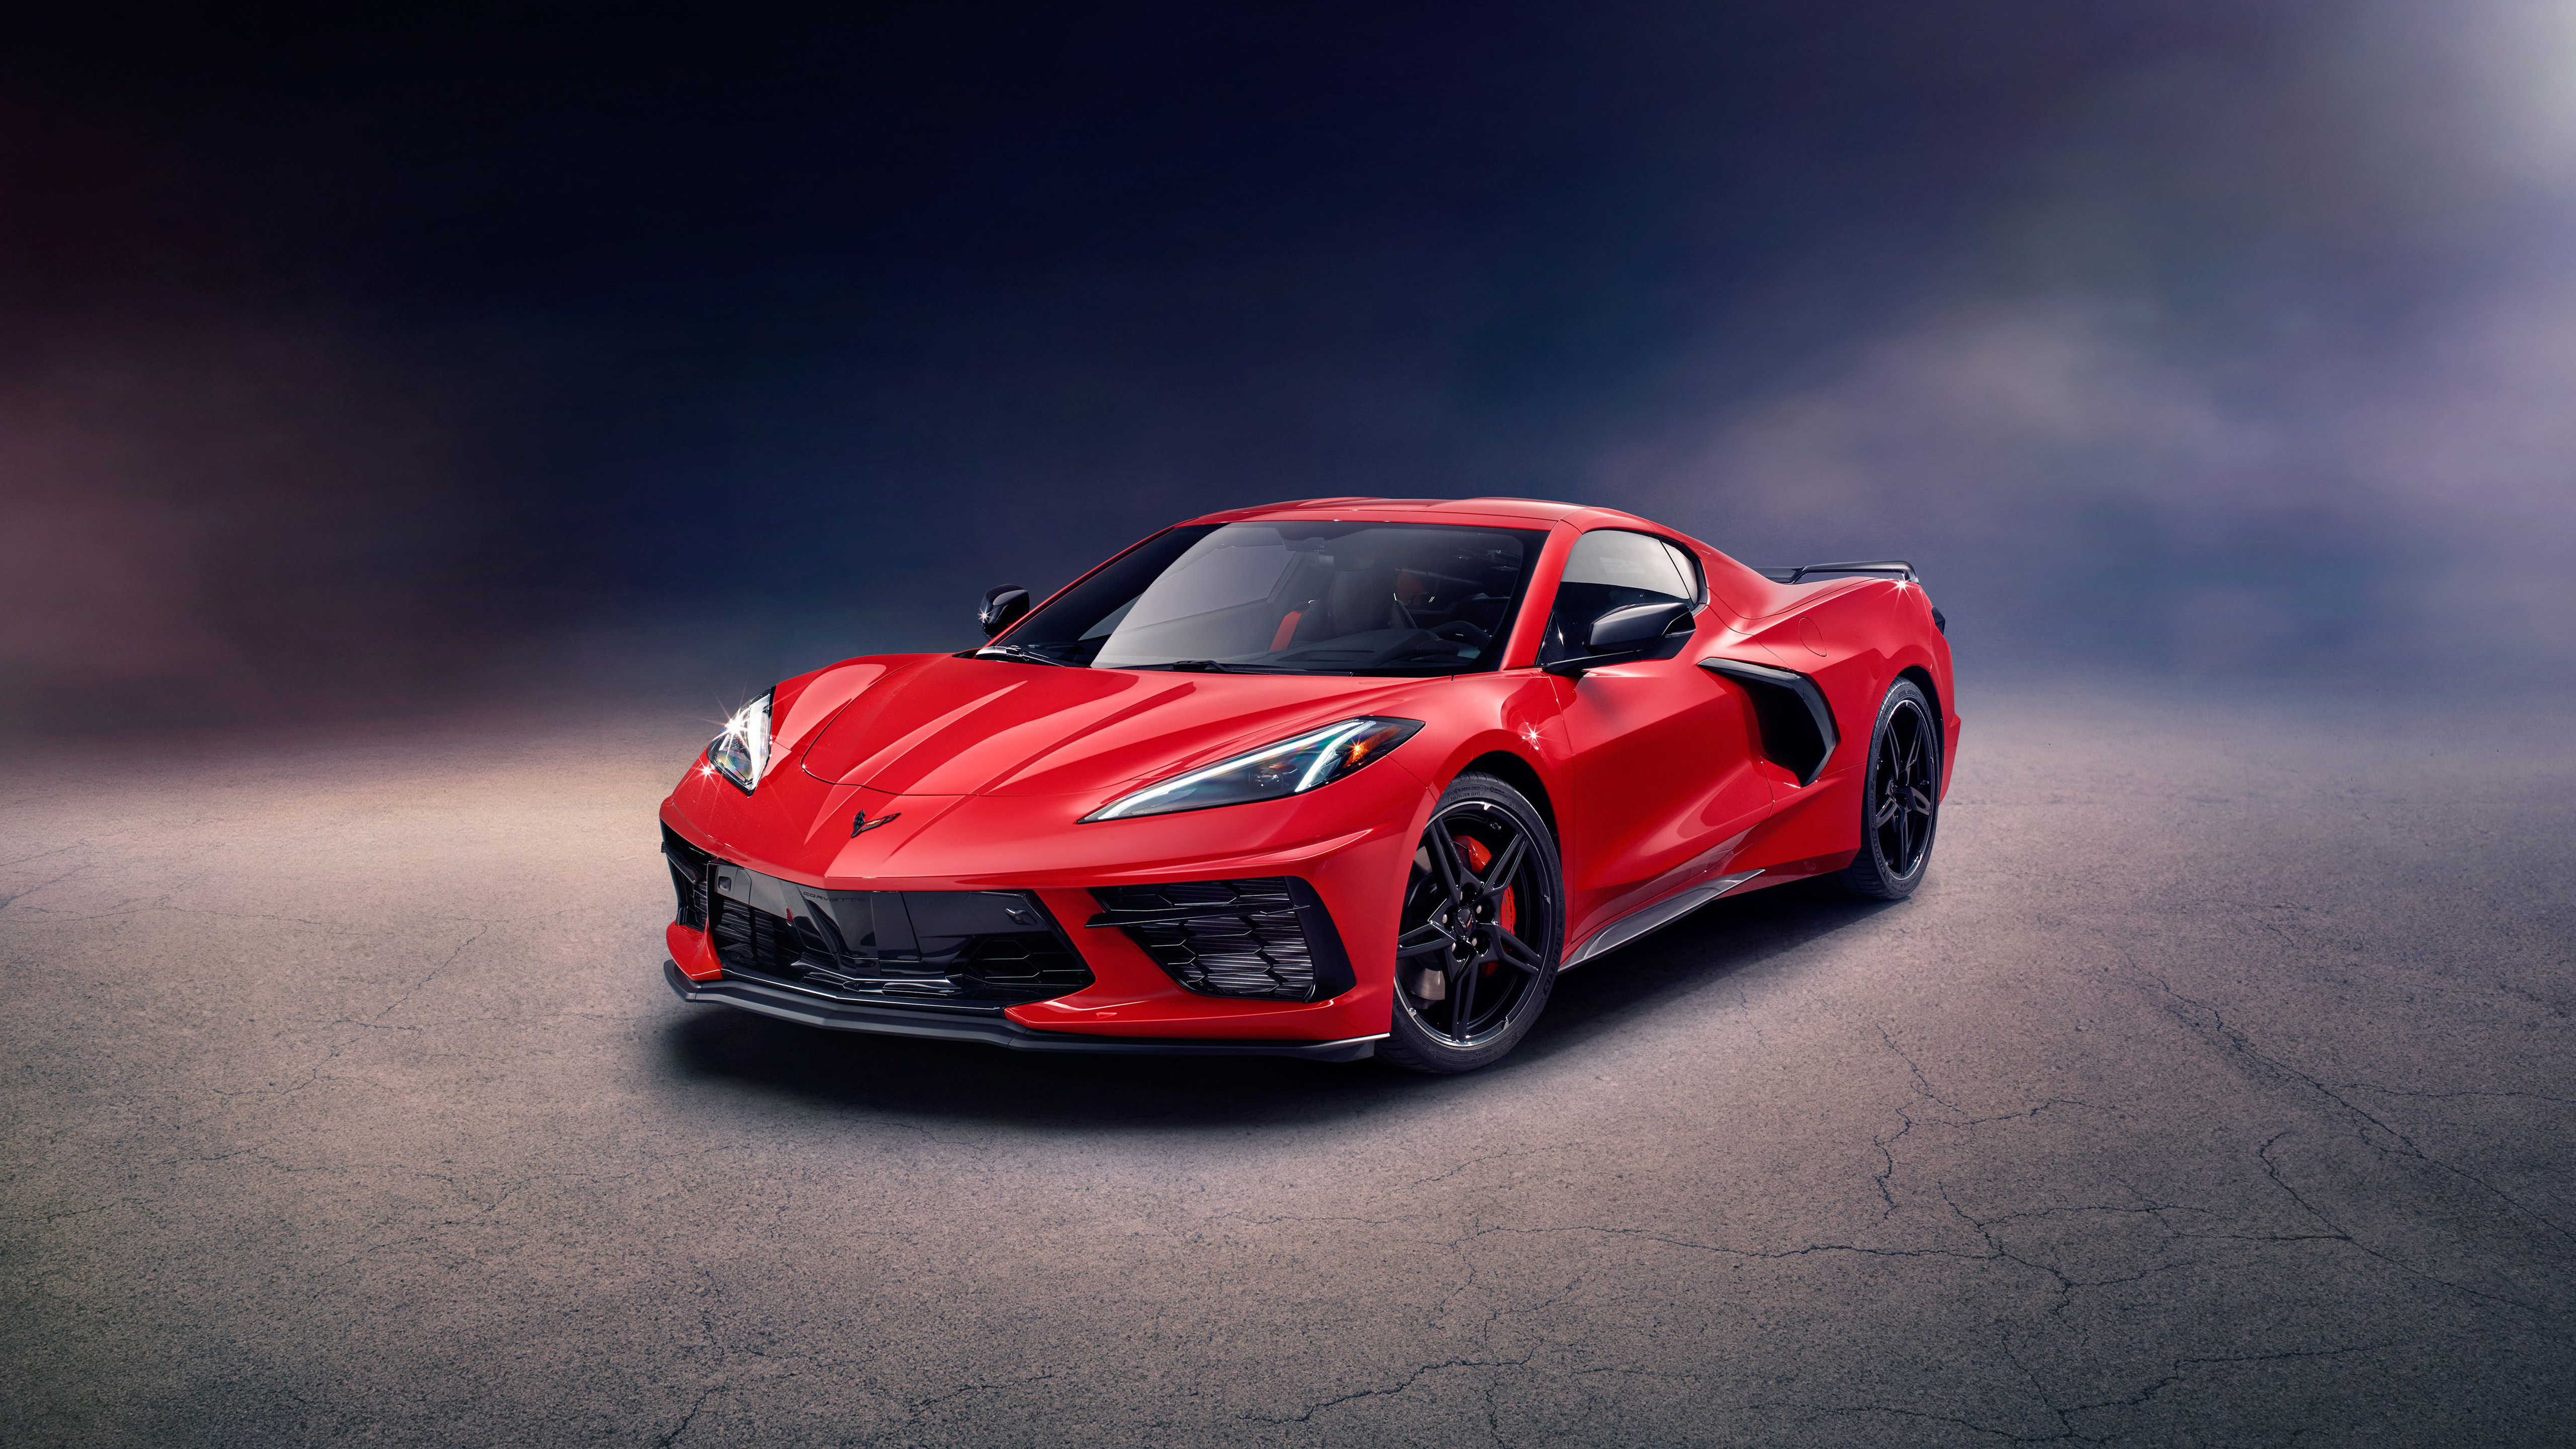 2020 Chevrolet Corvette Stingray Z51 4K 3 Wallpaper HD Car 5120x2880